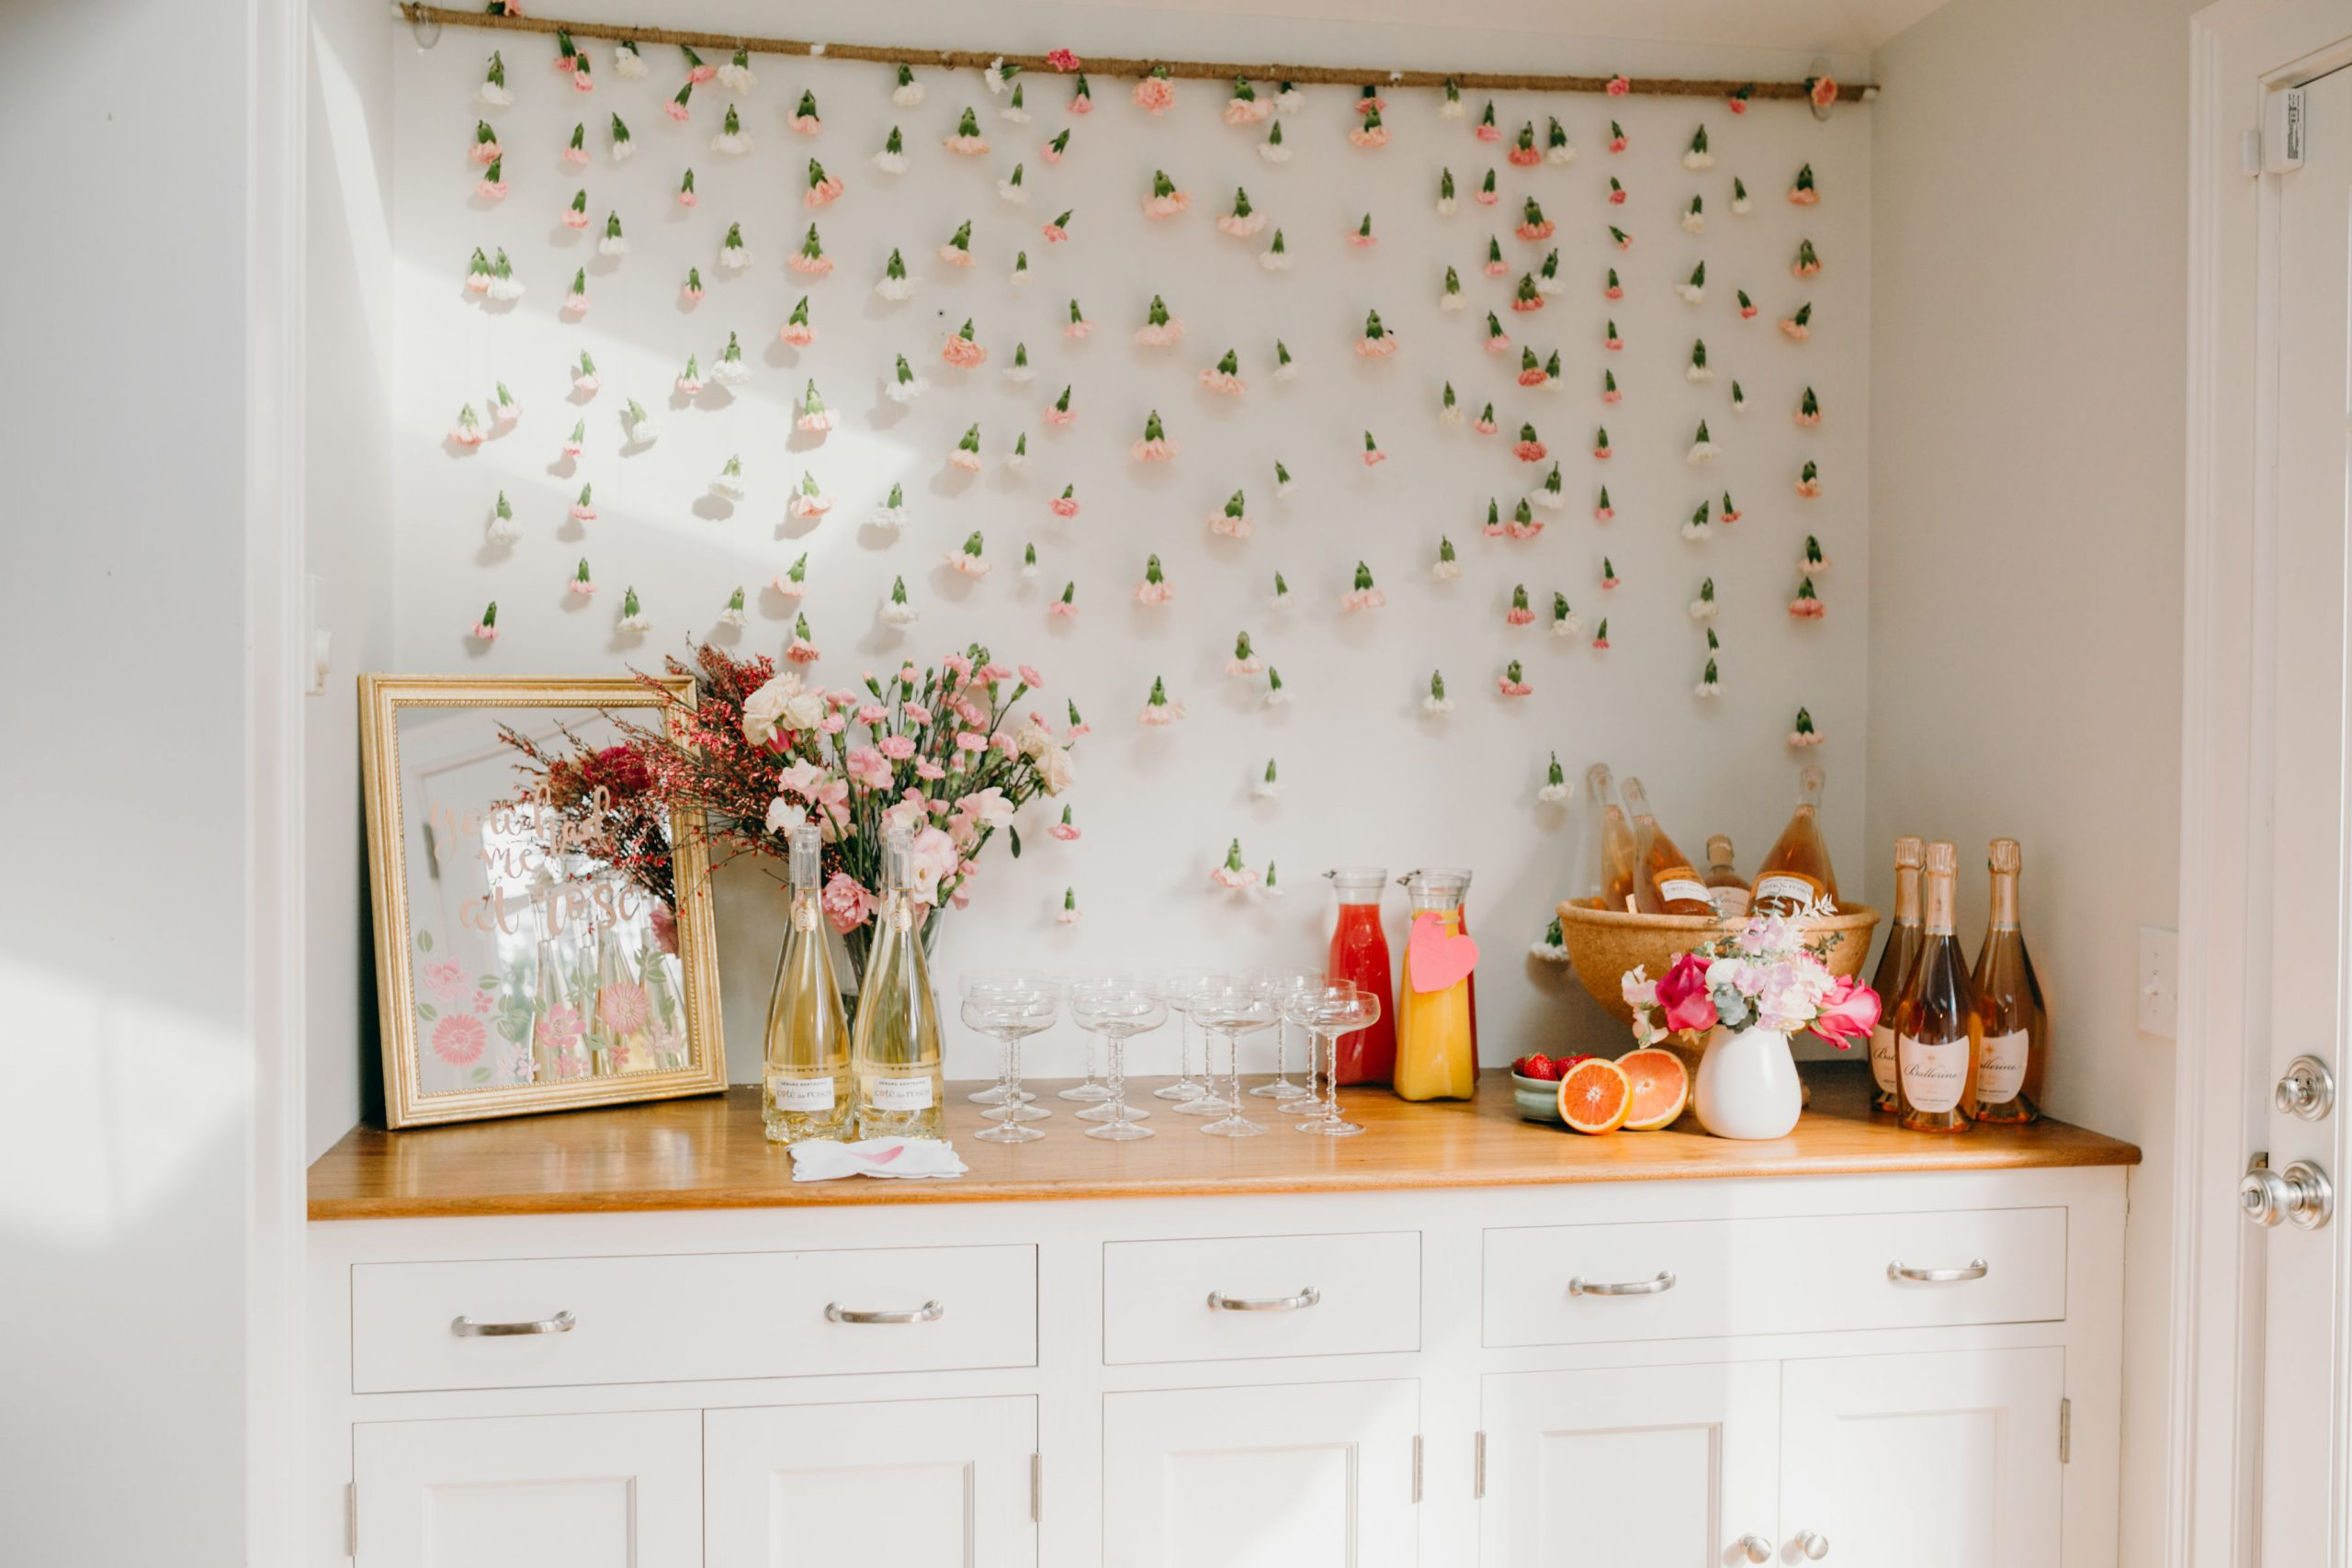 floral wall behind build in bar at home stocked for galentine's day brunch